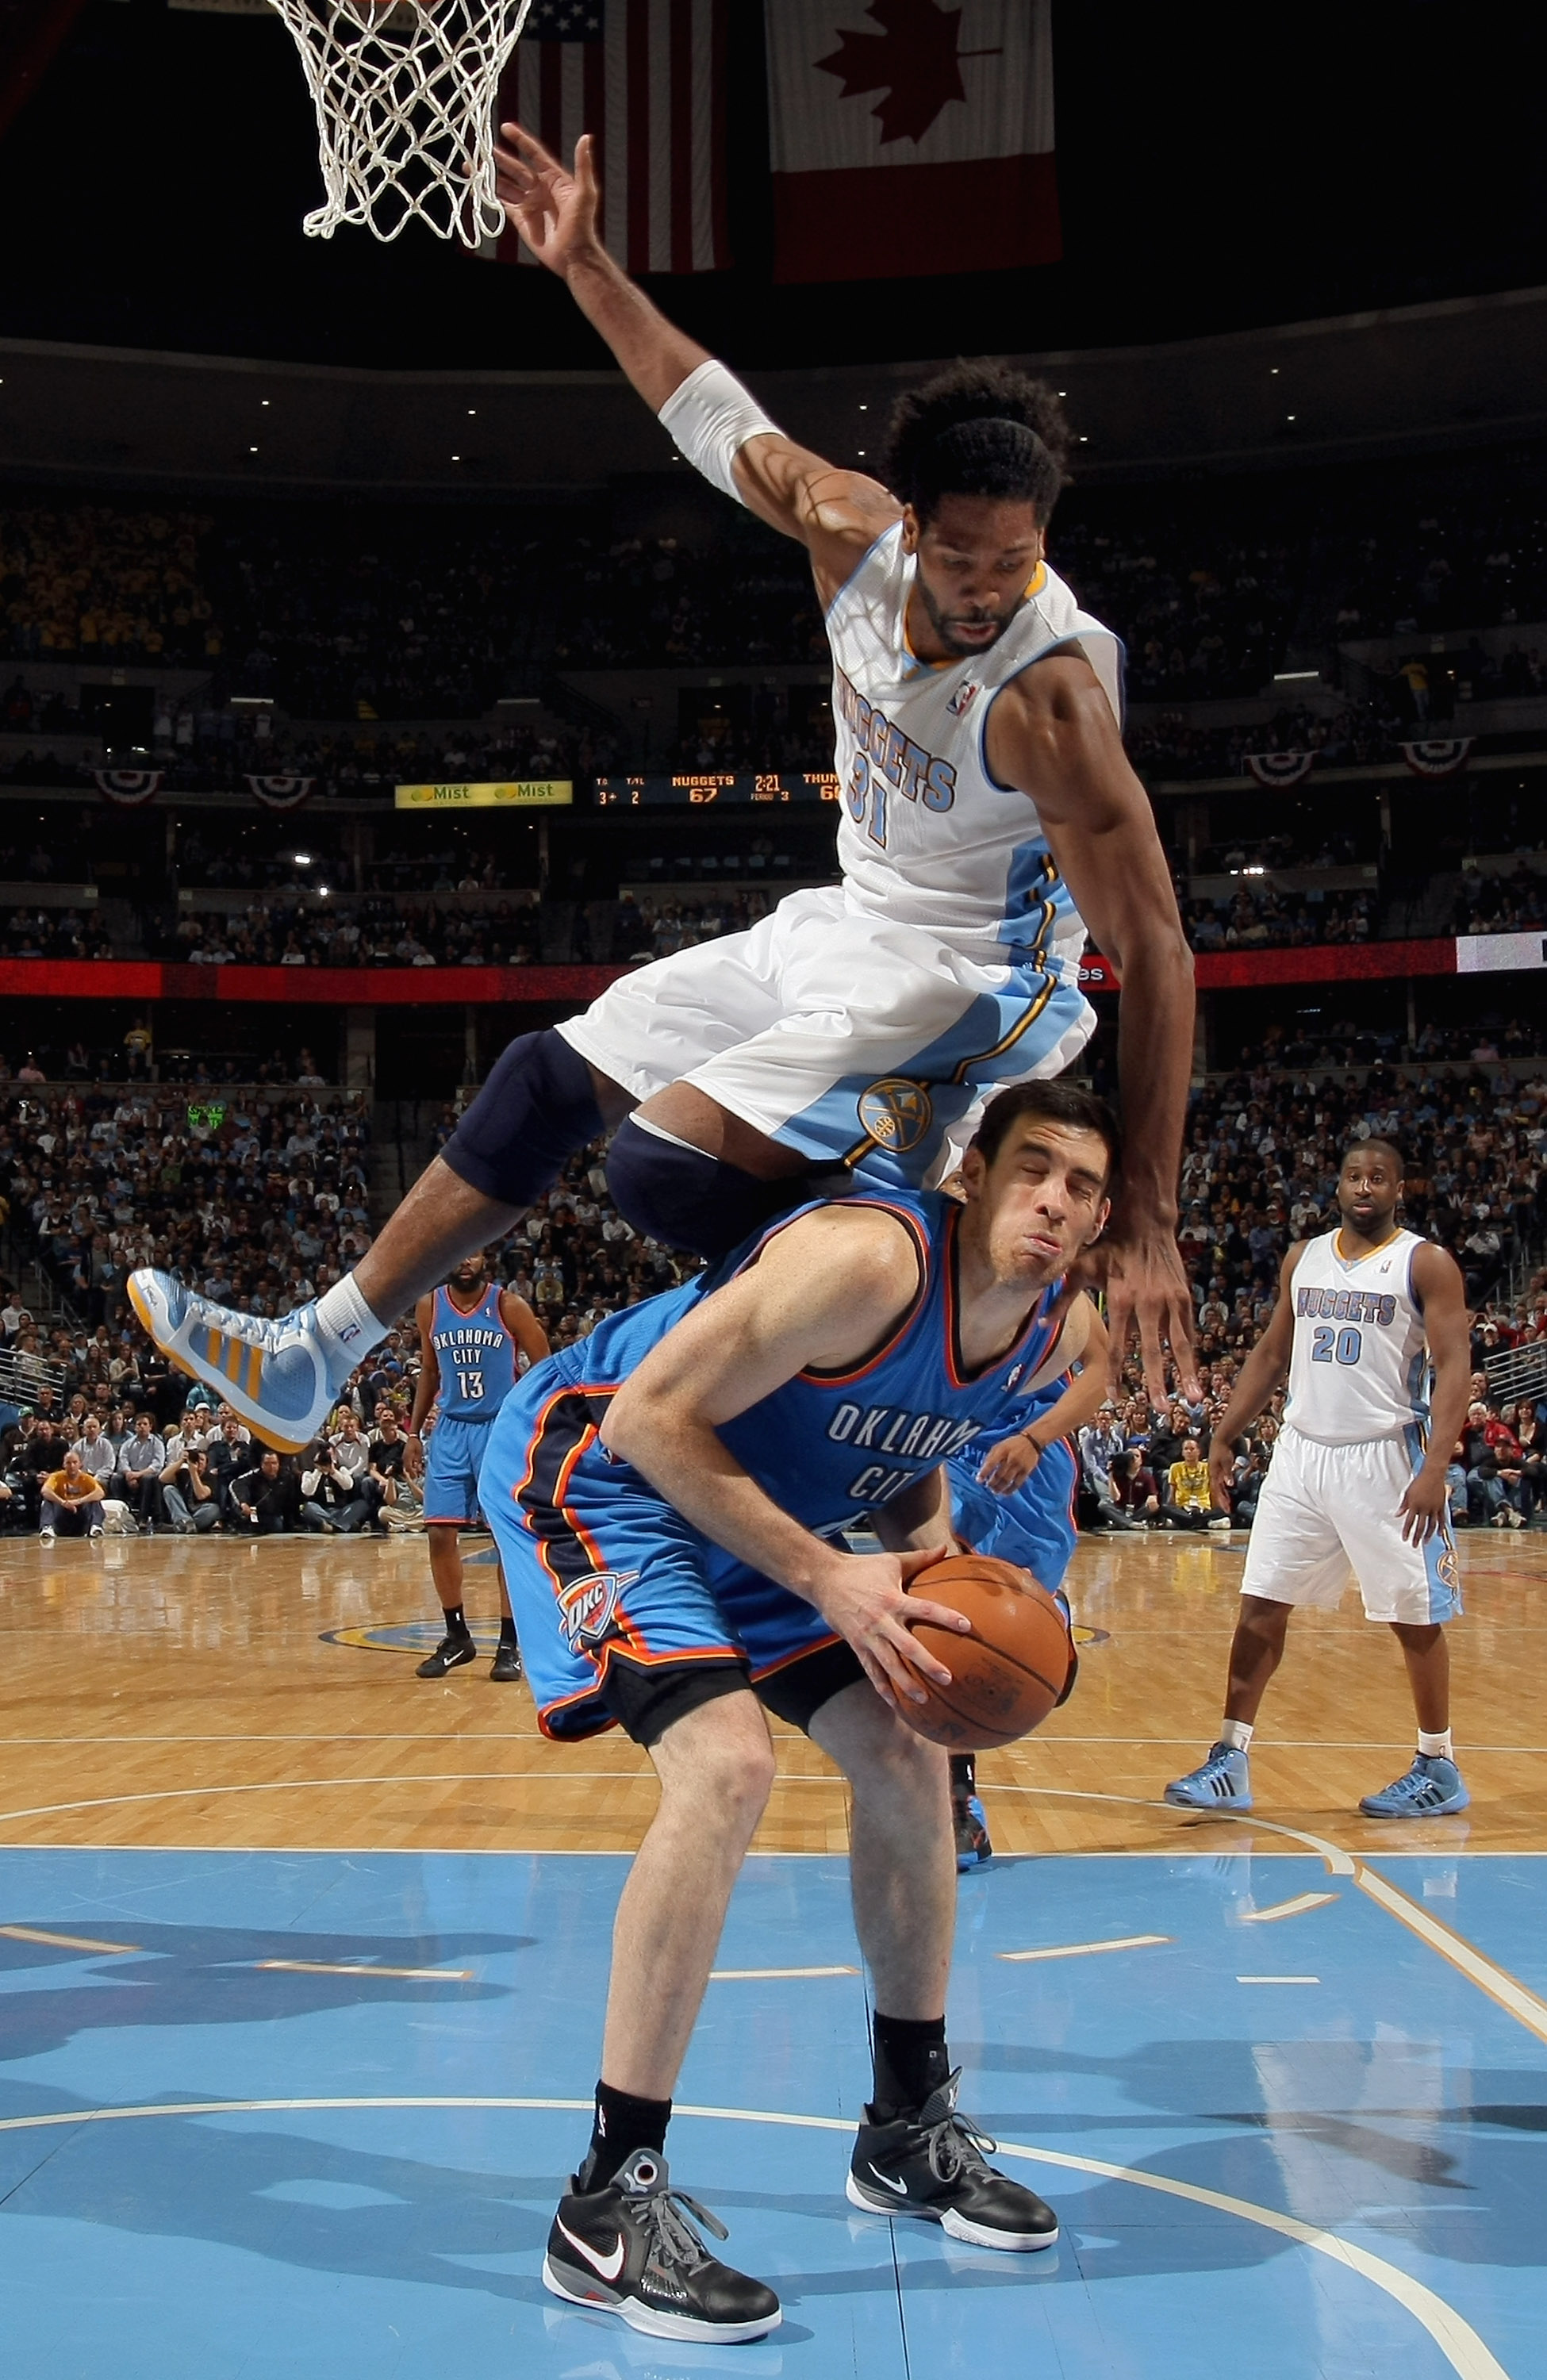 DENVER, CO - APRIL 25:  Nick Collison #4 of the Oklahoma City Thunder tries to get off a shot but is fouled by Nene Hilario #31 of the Denver Nuggets in Game Four of the Western Conference Quarterfinals in the 2011 NBA Playoffs on April 24, 2011 at the Pe